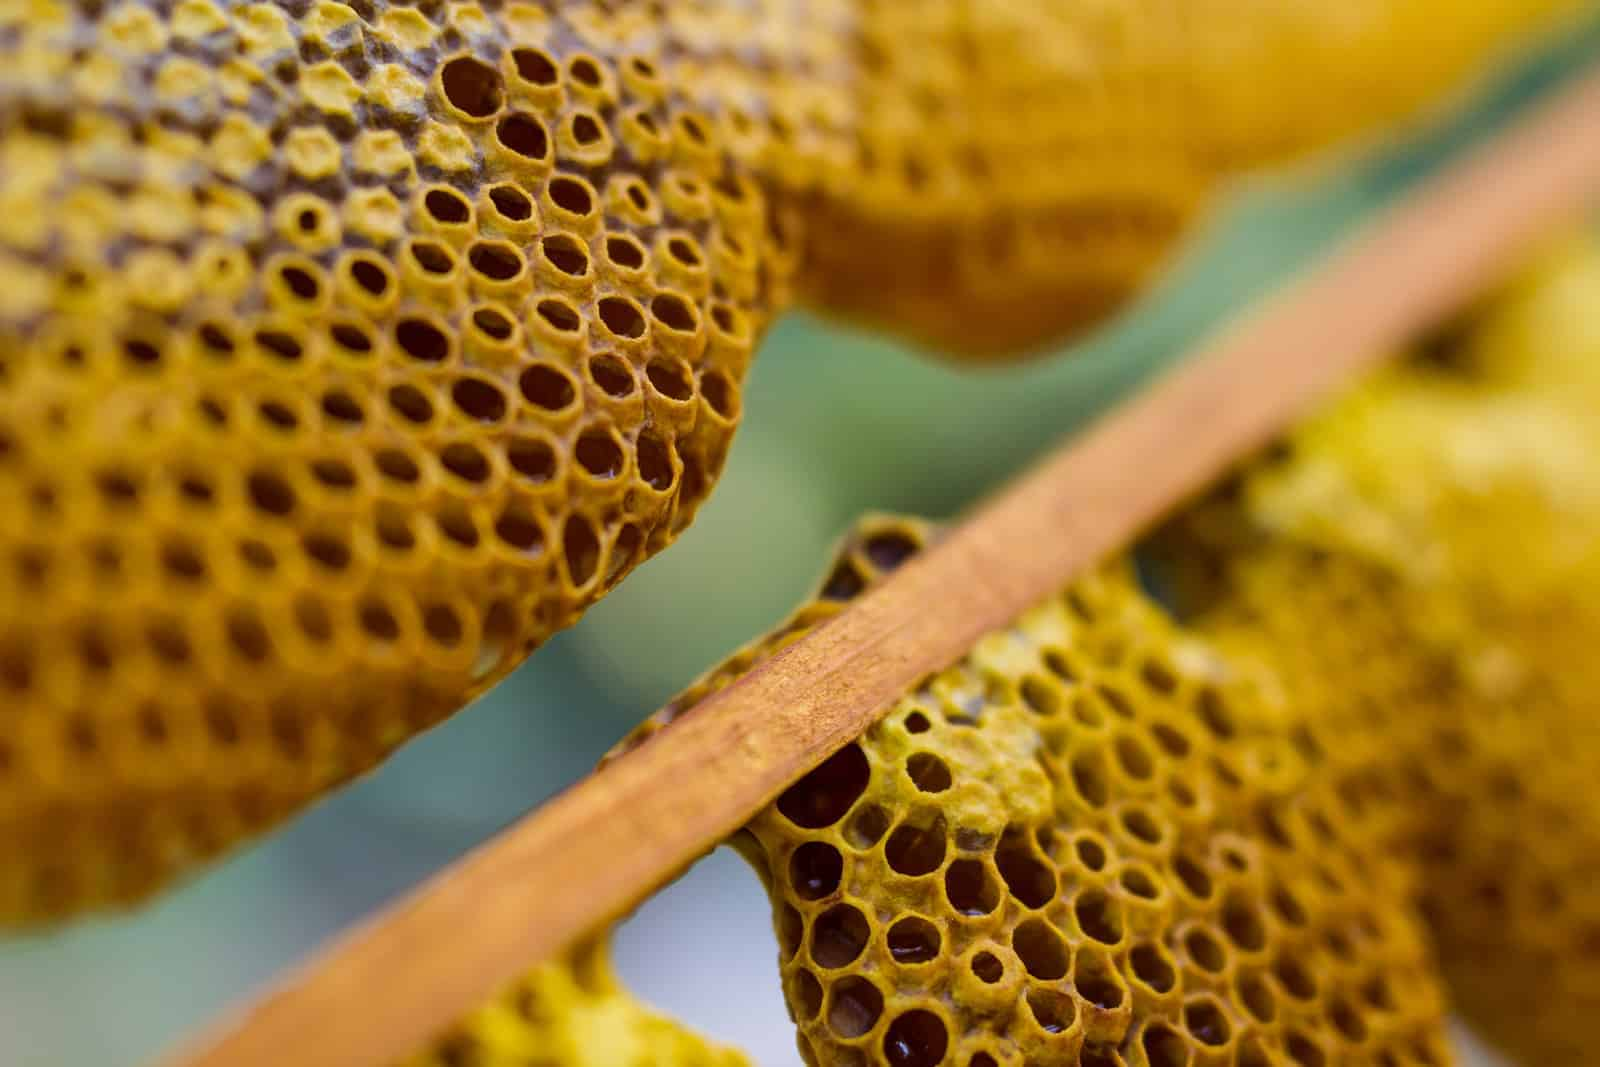 Foundation or Foundationless Beekeeping? - PerfectBee